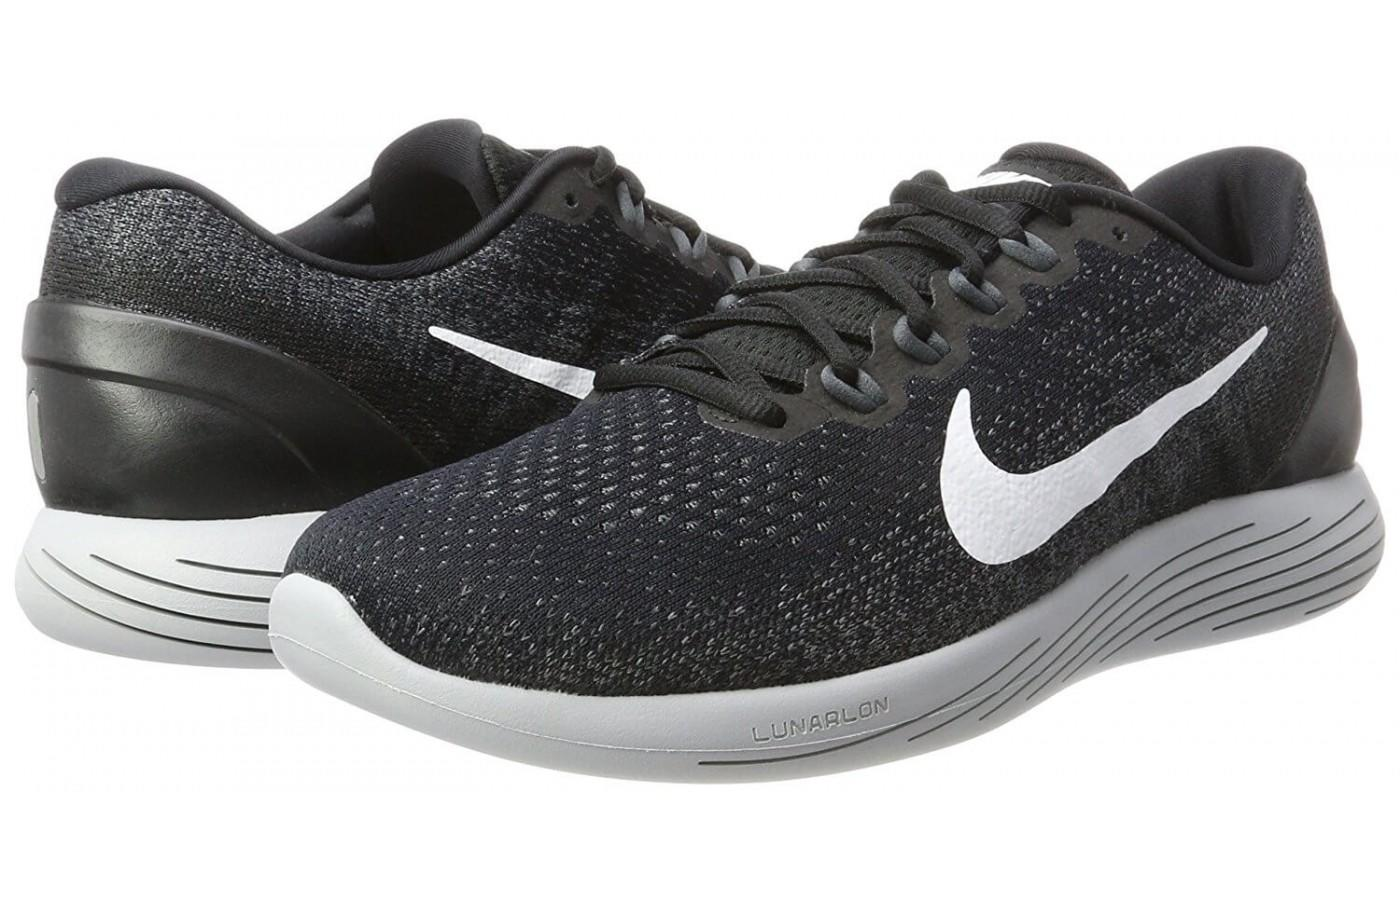 the Nike Lunarglide 9 is a comfortable stability shoe that both overpronators and neutral runners can enjoy